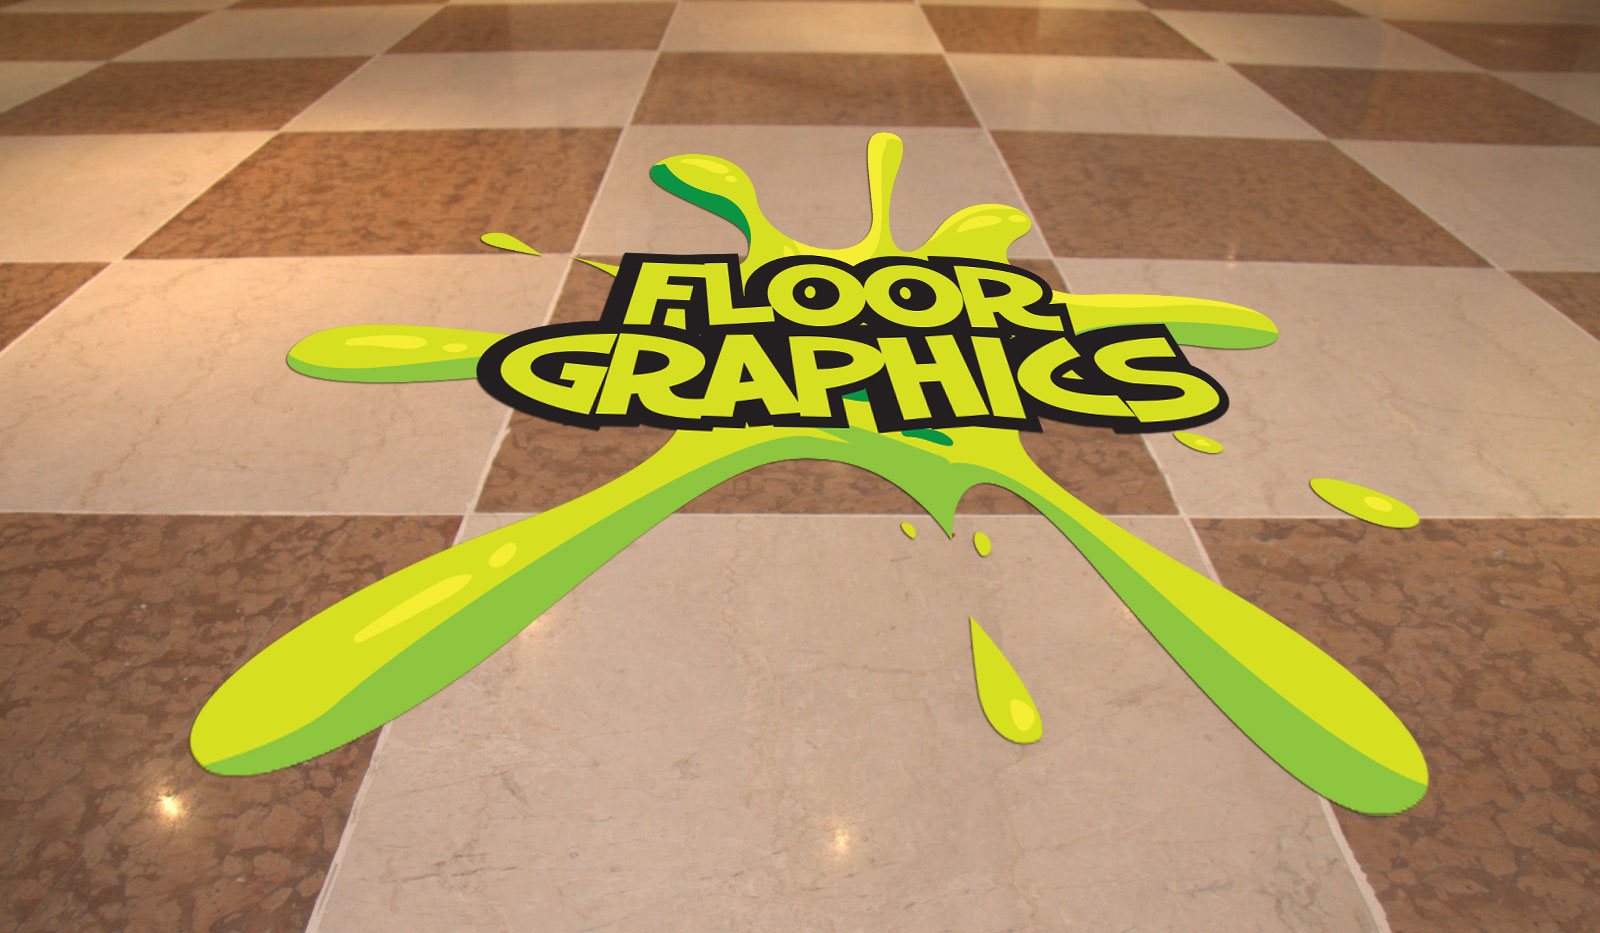 Image gallery floor graphics for Floor stickers